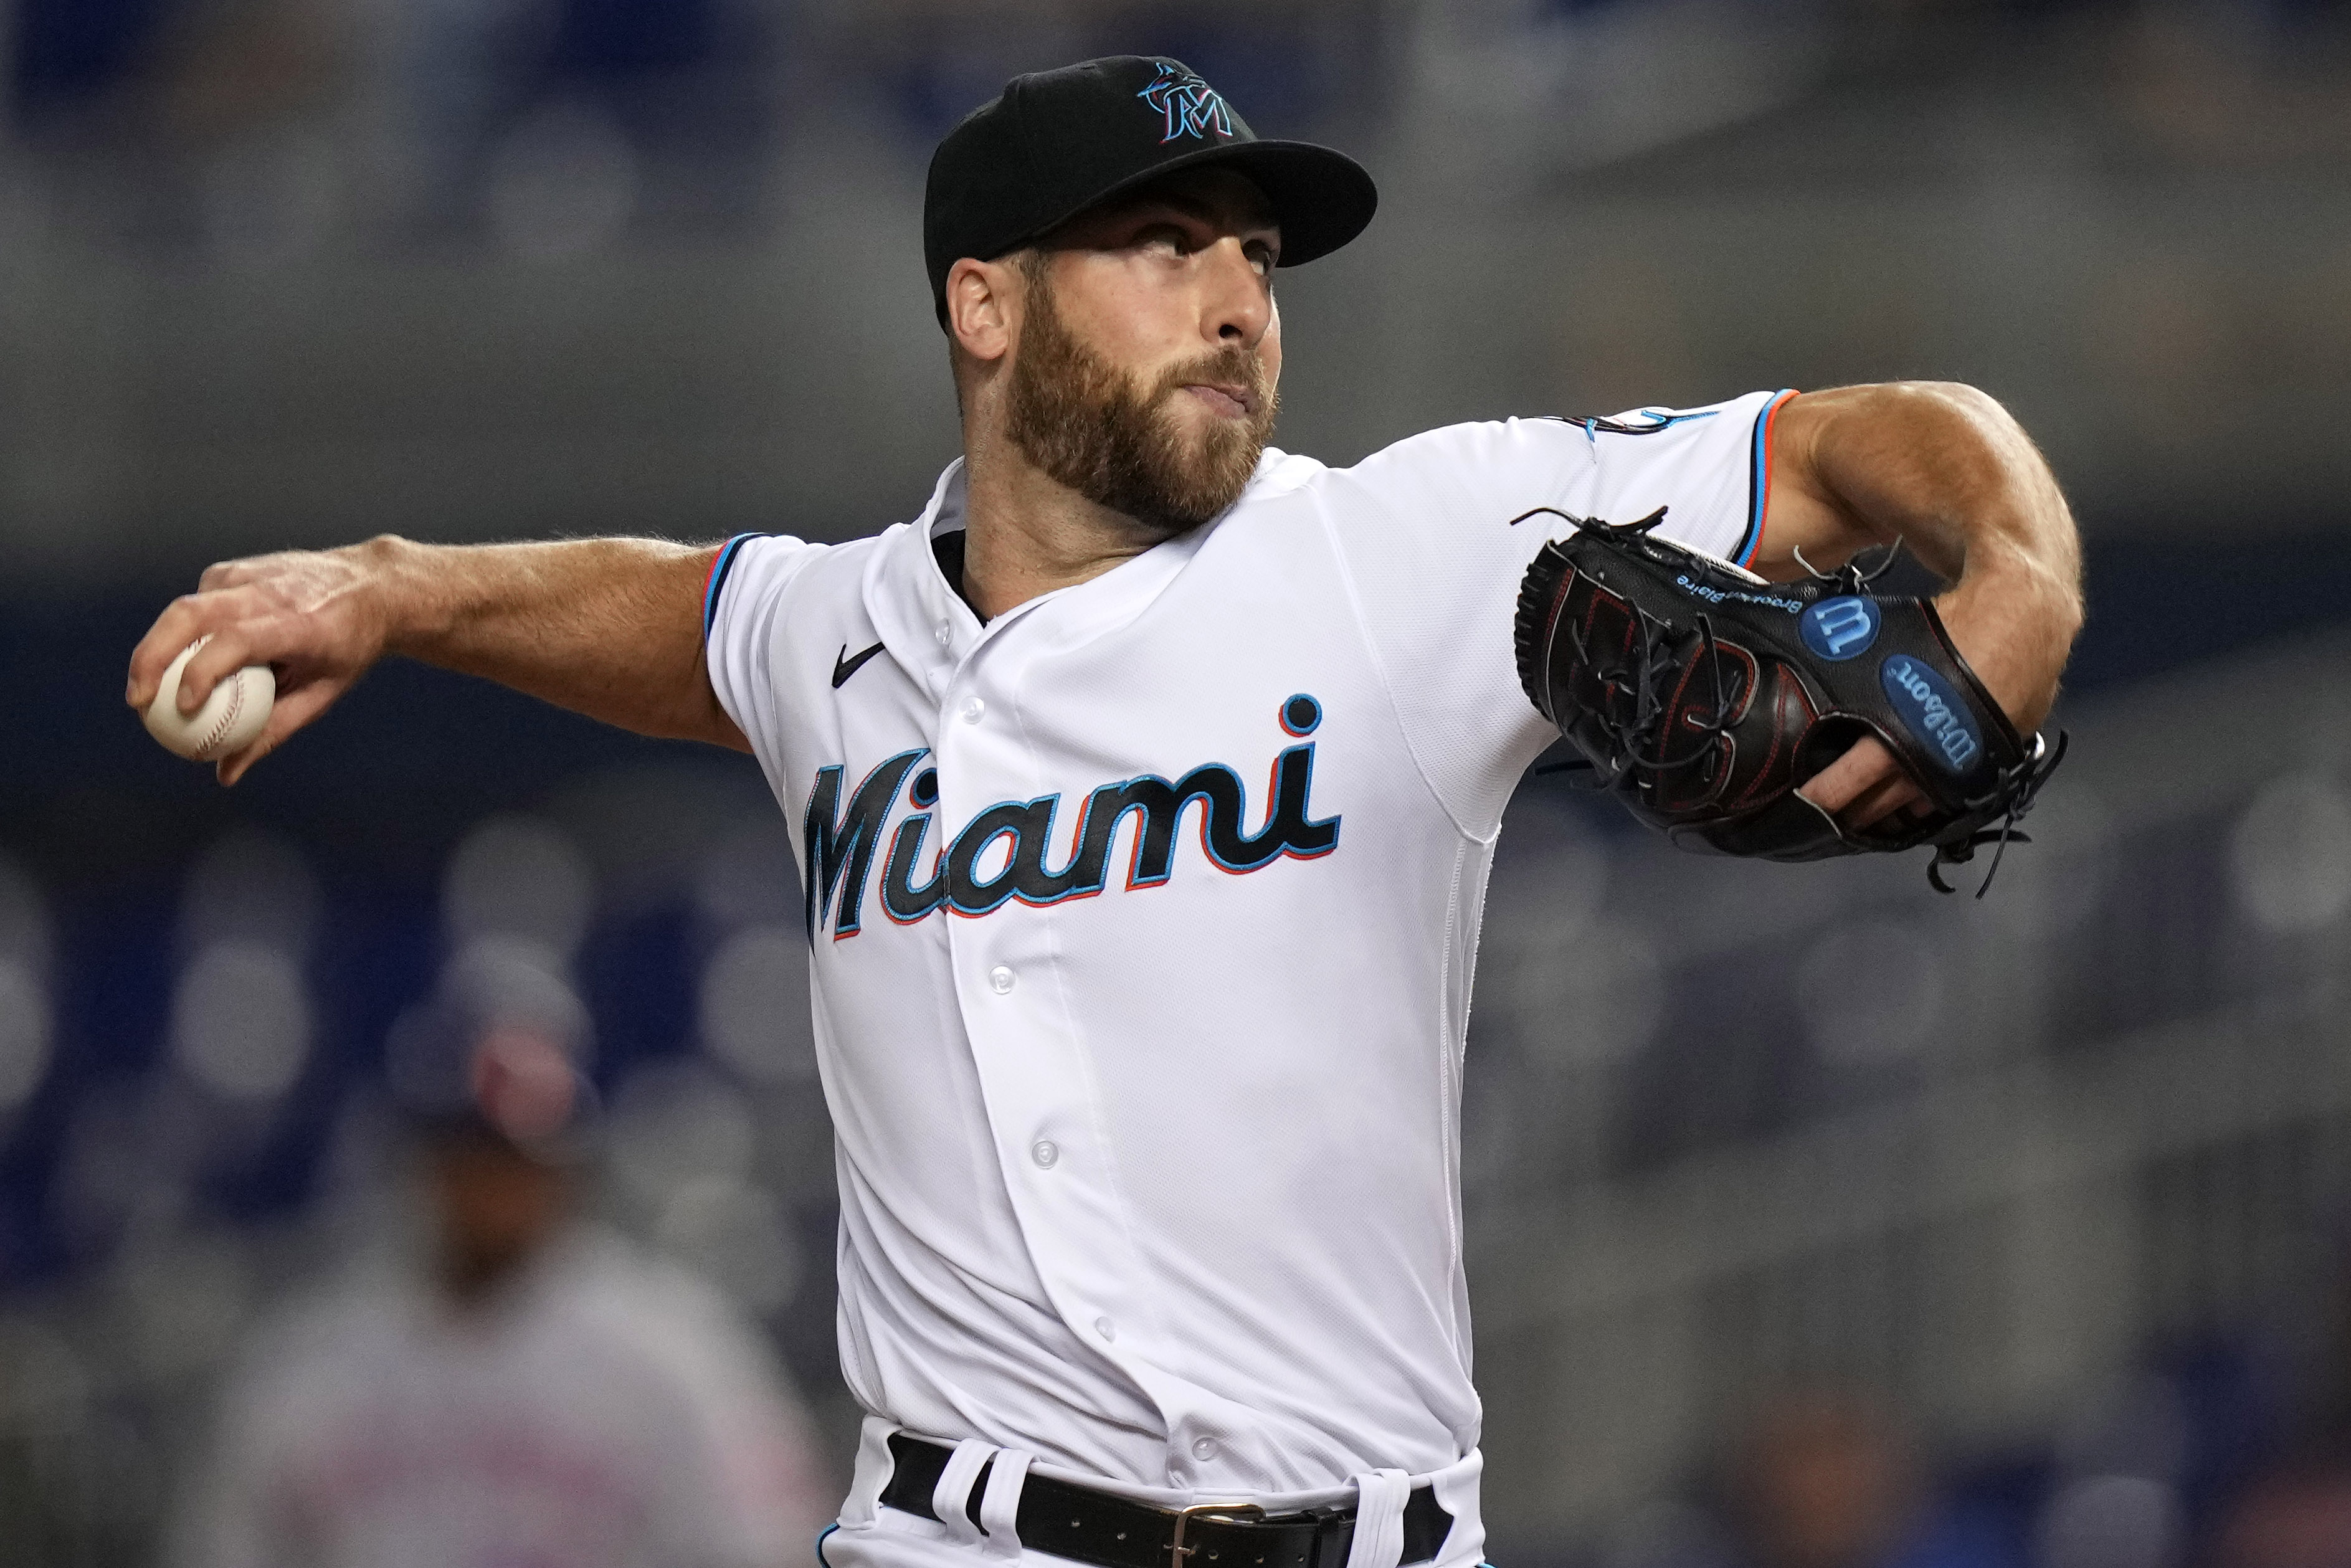 Miami Marlins relief pitcher Anthony Bass (52) delivers a pitch in the 7th inning against the New York Mets at loanDepot park